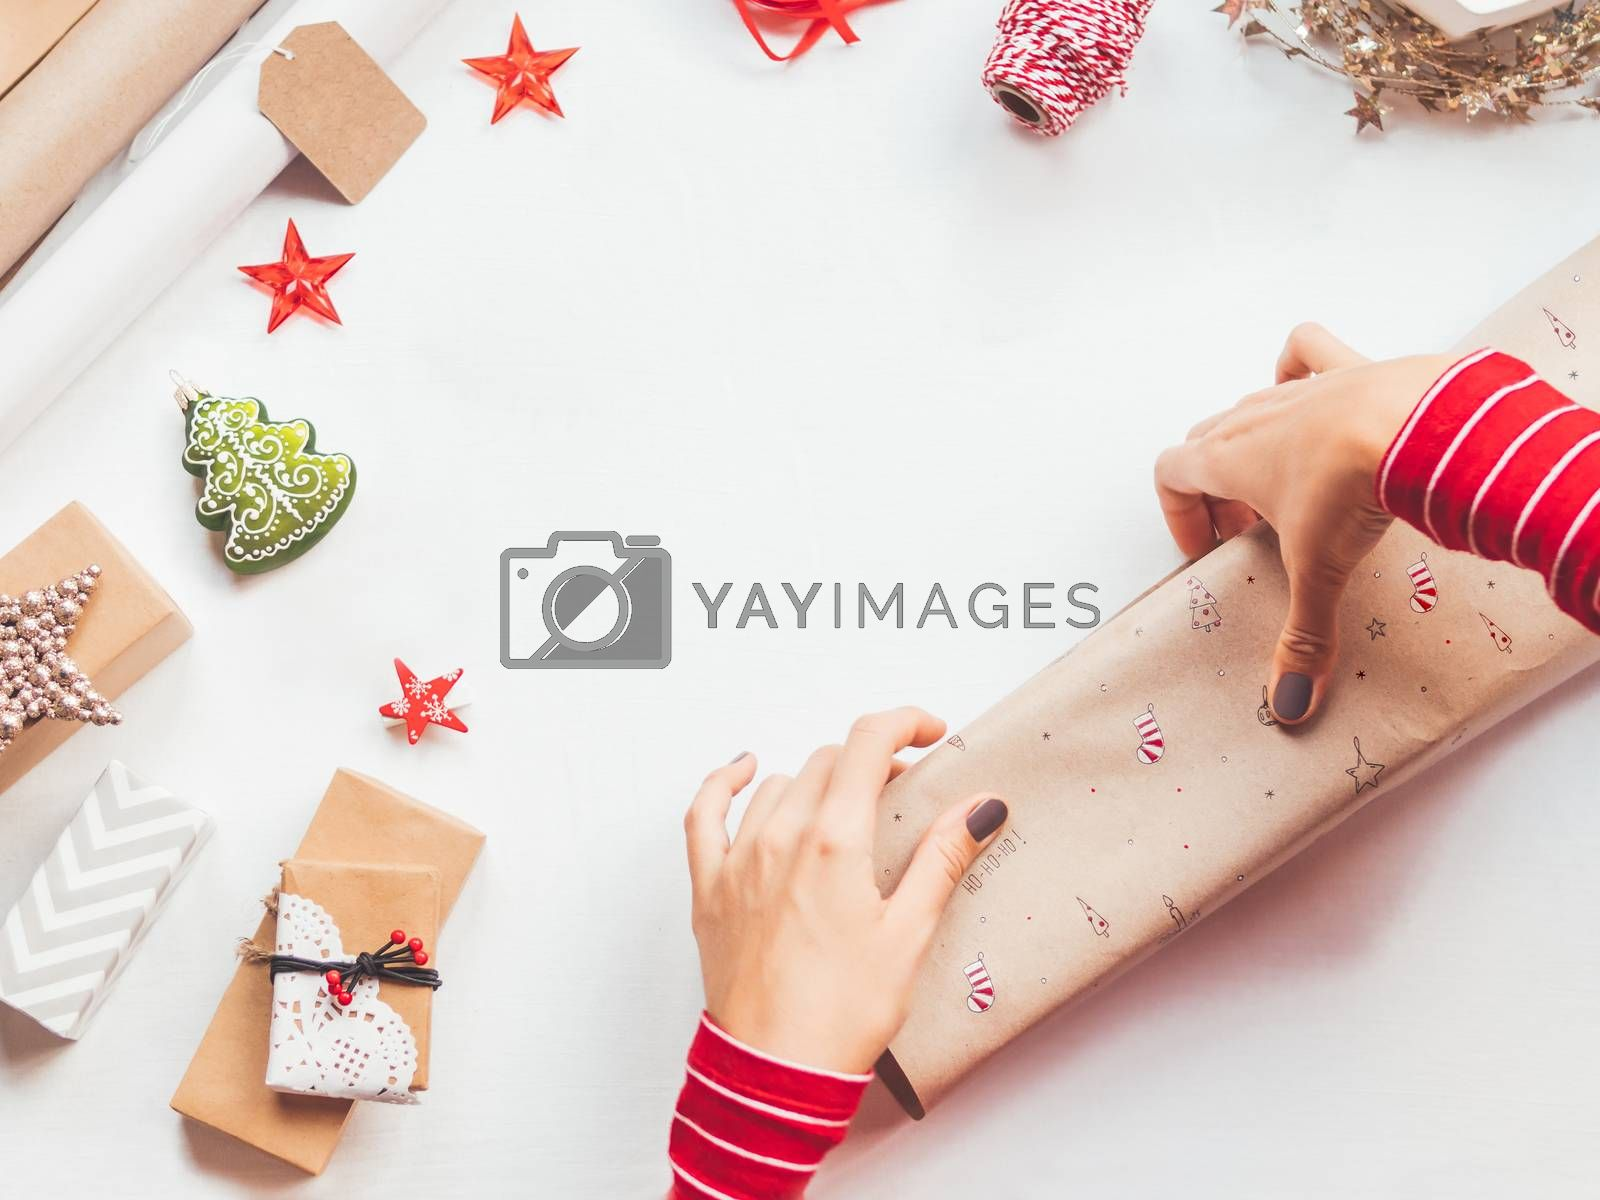 Top view on table with Christmas decorations. Woman draws New Year symbols on craft paper and wraps presents. Flat lay with copy space.